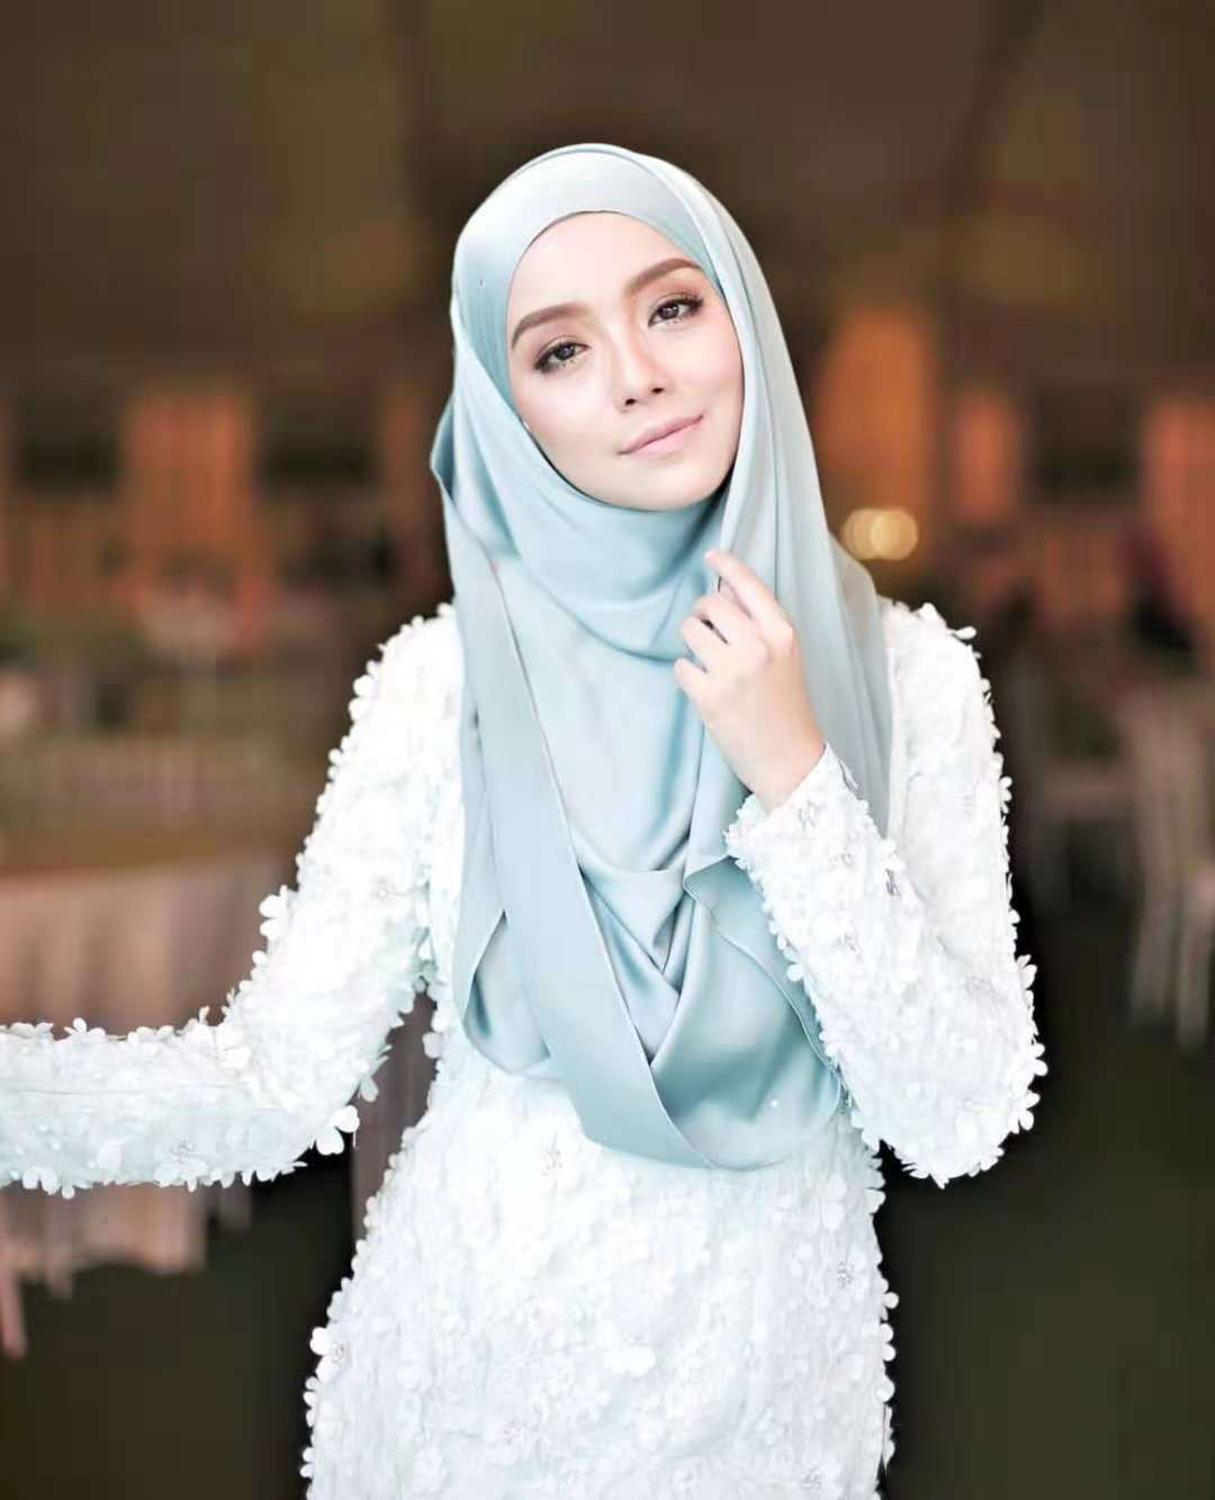 New Smooth Shiny Silk Feeling Satin Scarf Shawls Plain Solider Colors Thicken Hijab Muslim Scarves/scarf 19 Colors For Choose